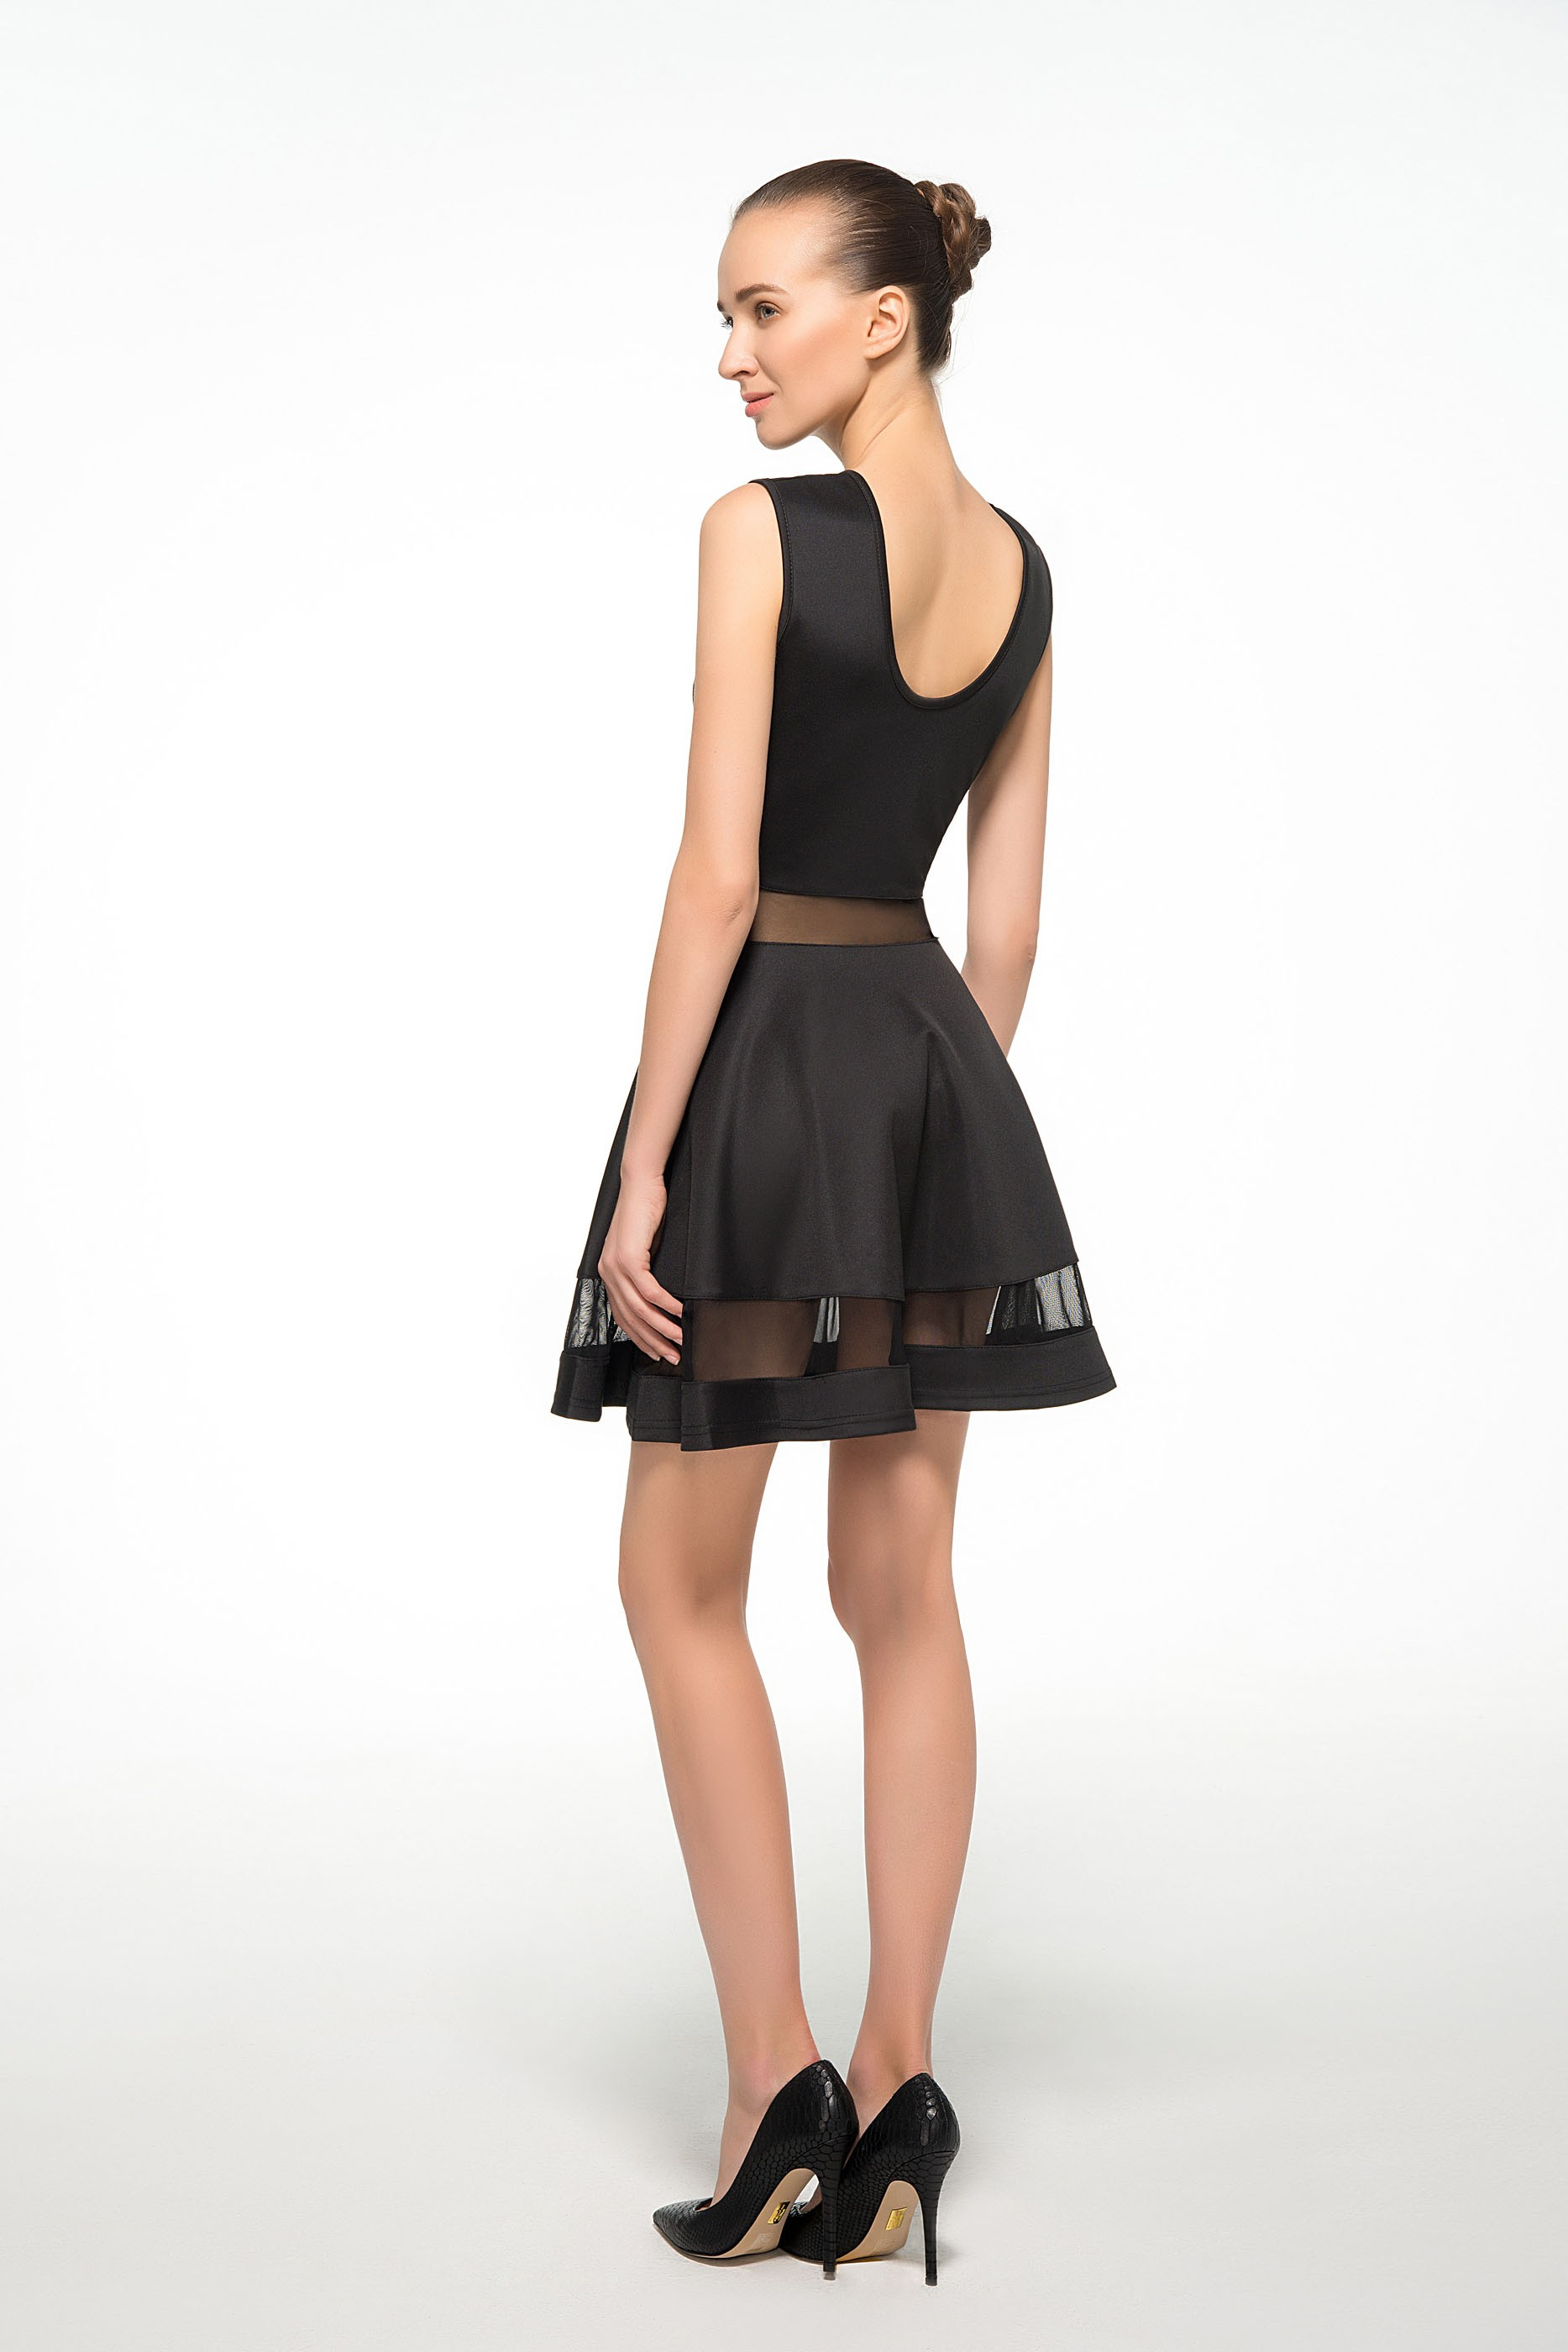 Perfect Black Mesh Panel Club Skater Dress is Hot Selling at MsFairy.com